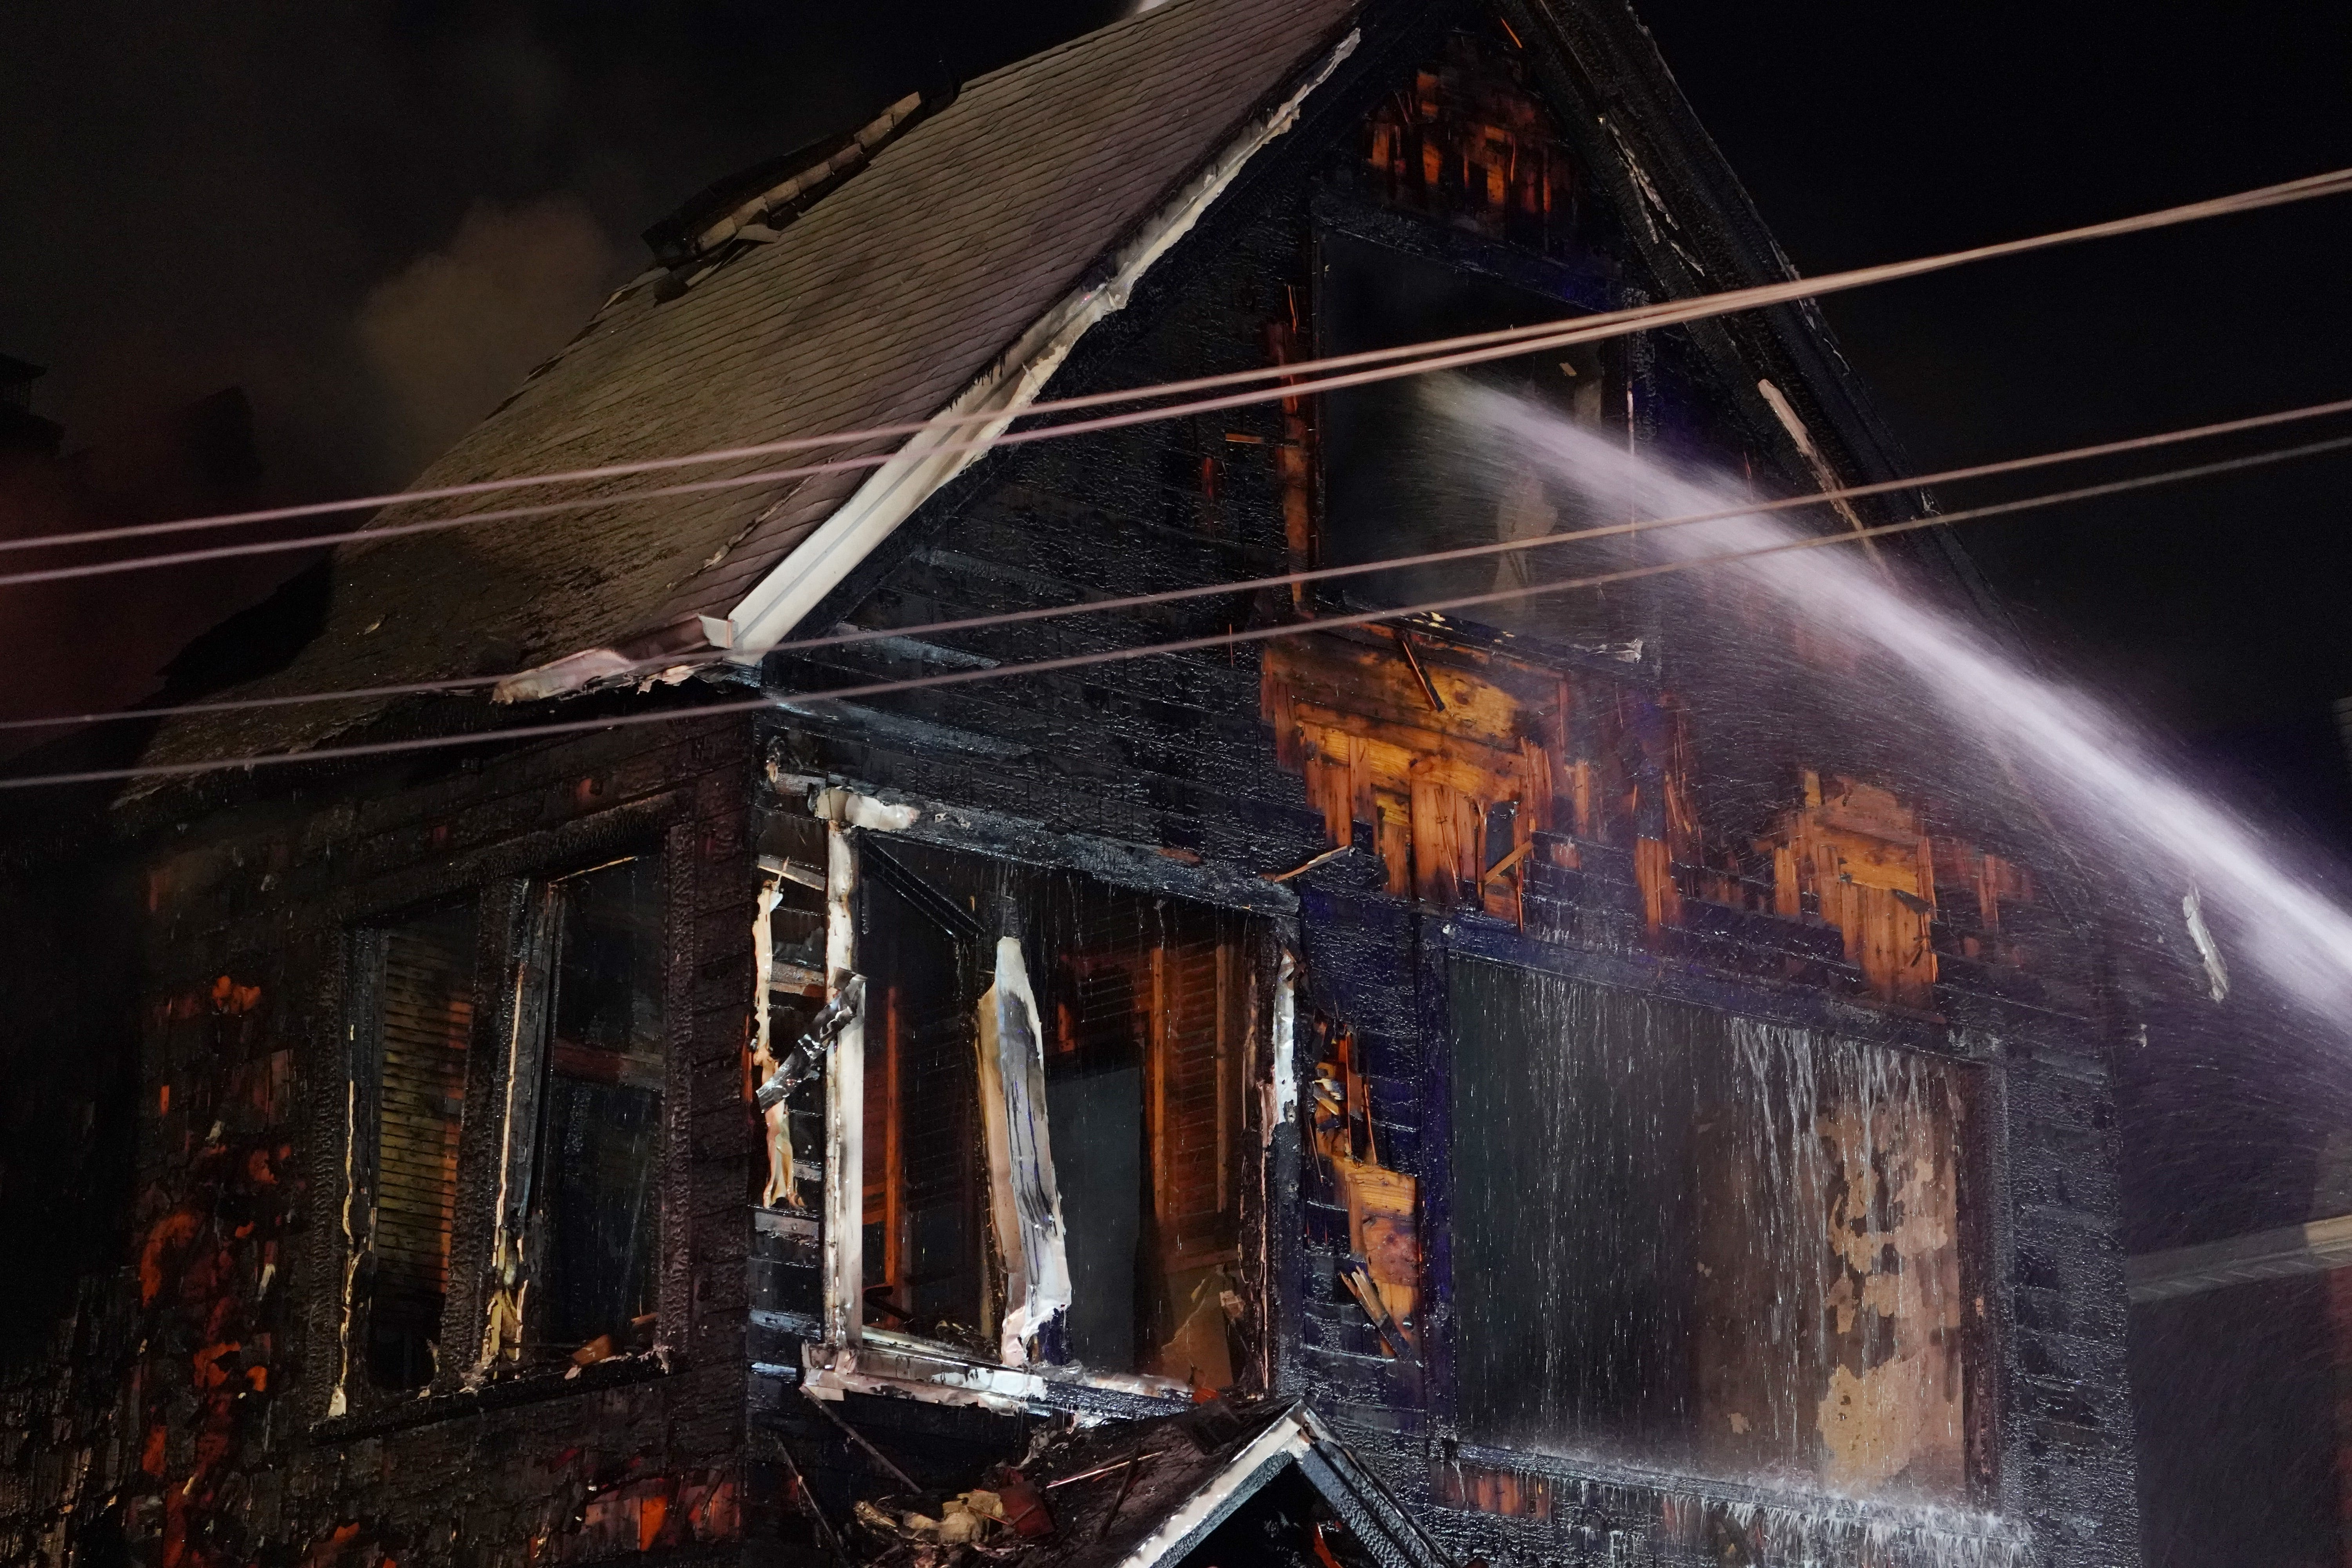 Garfield Nj Police Officer Loses Home 5 Other Families Displaced